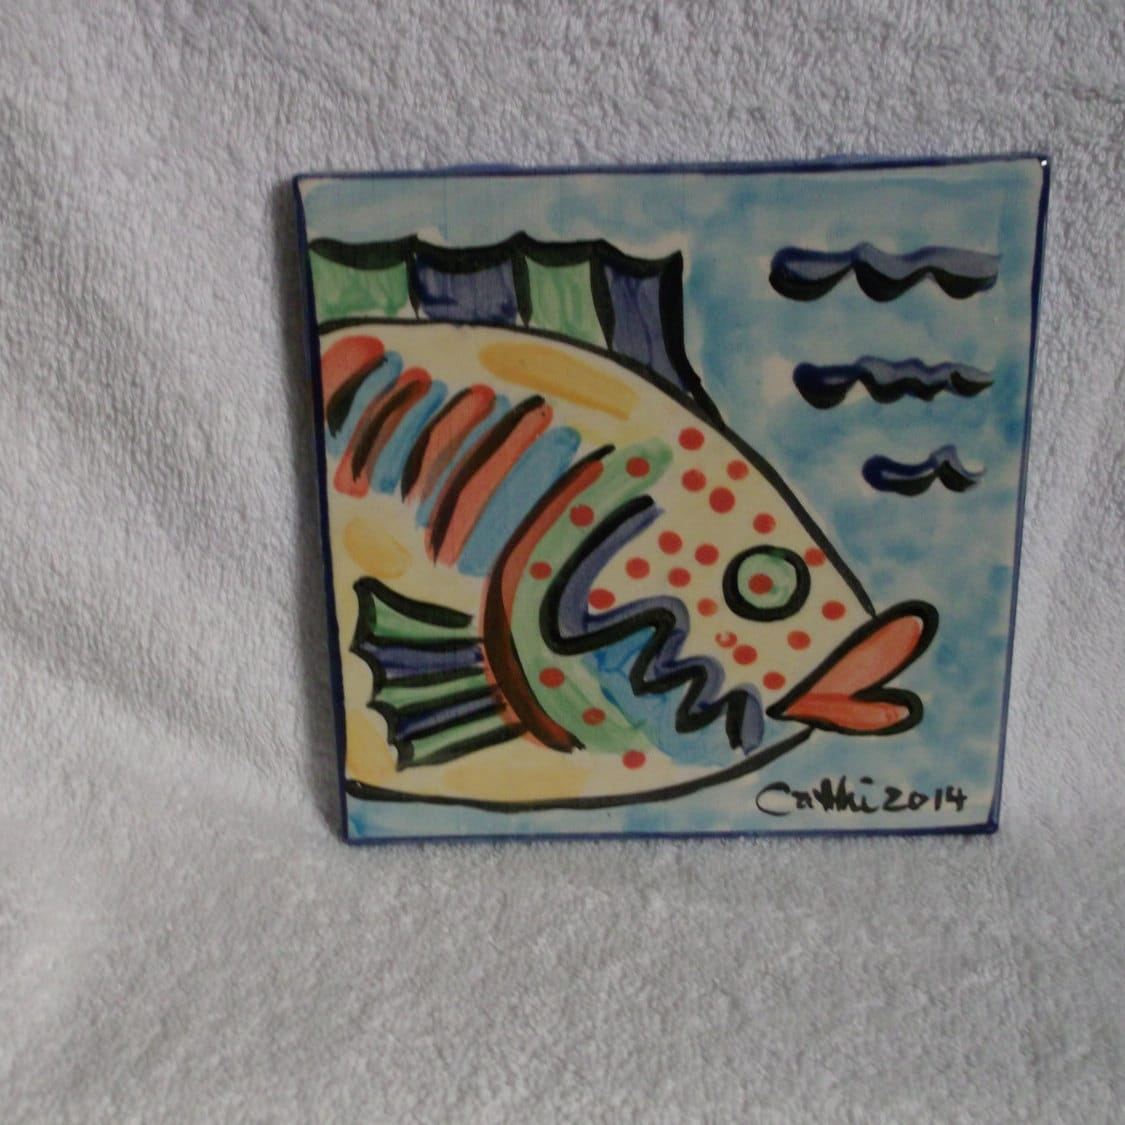 Hand painted ceramic fish tile bright colors 6 by 6 by - Hand painted ceramic tile ...